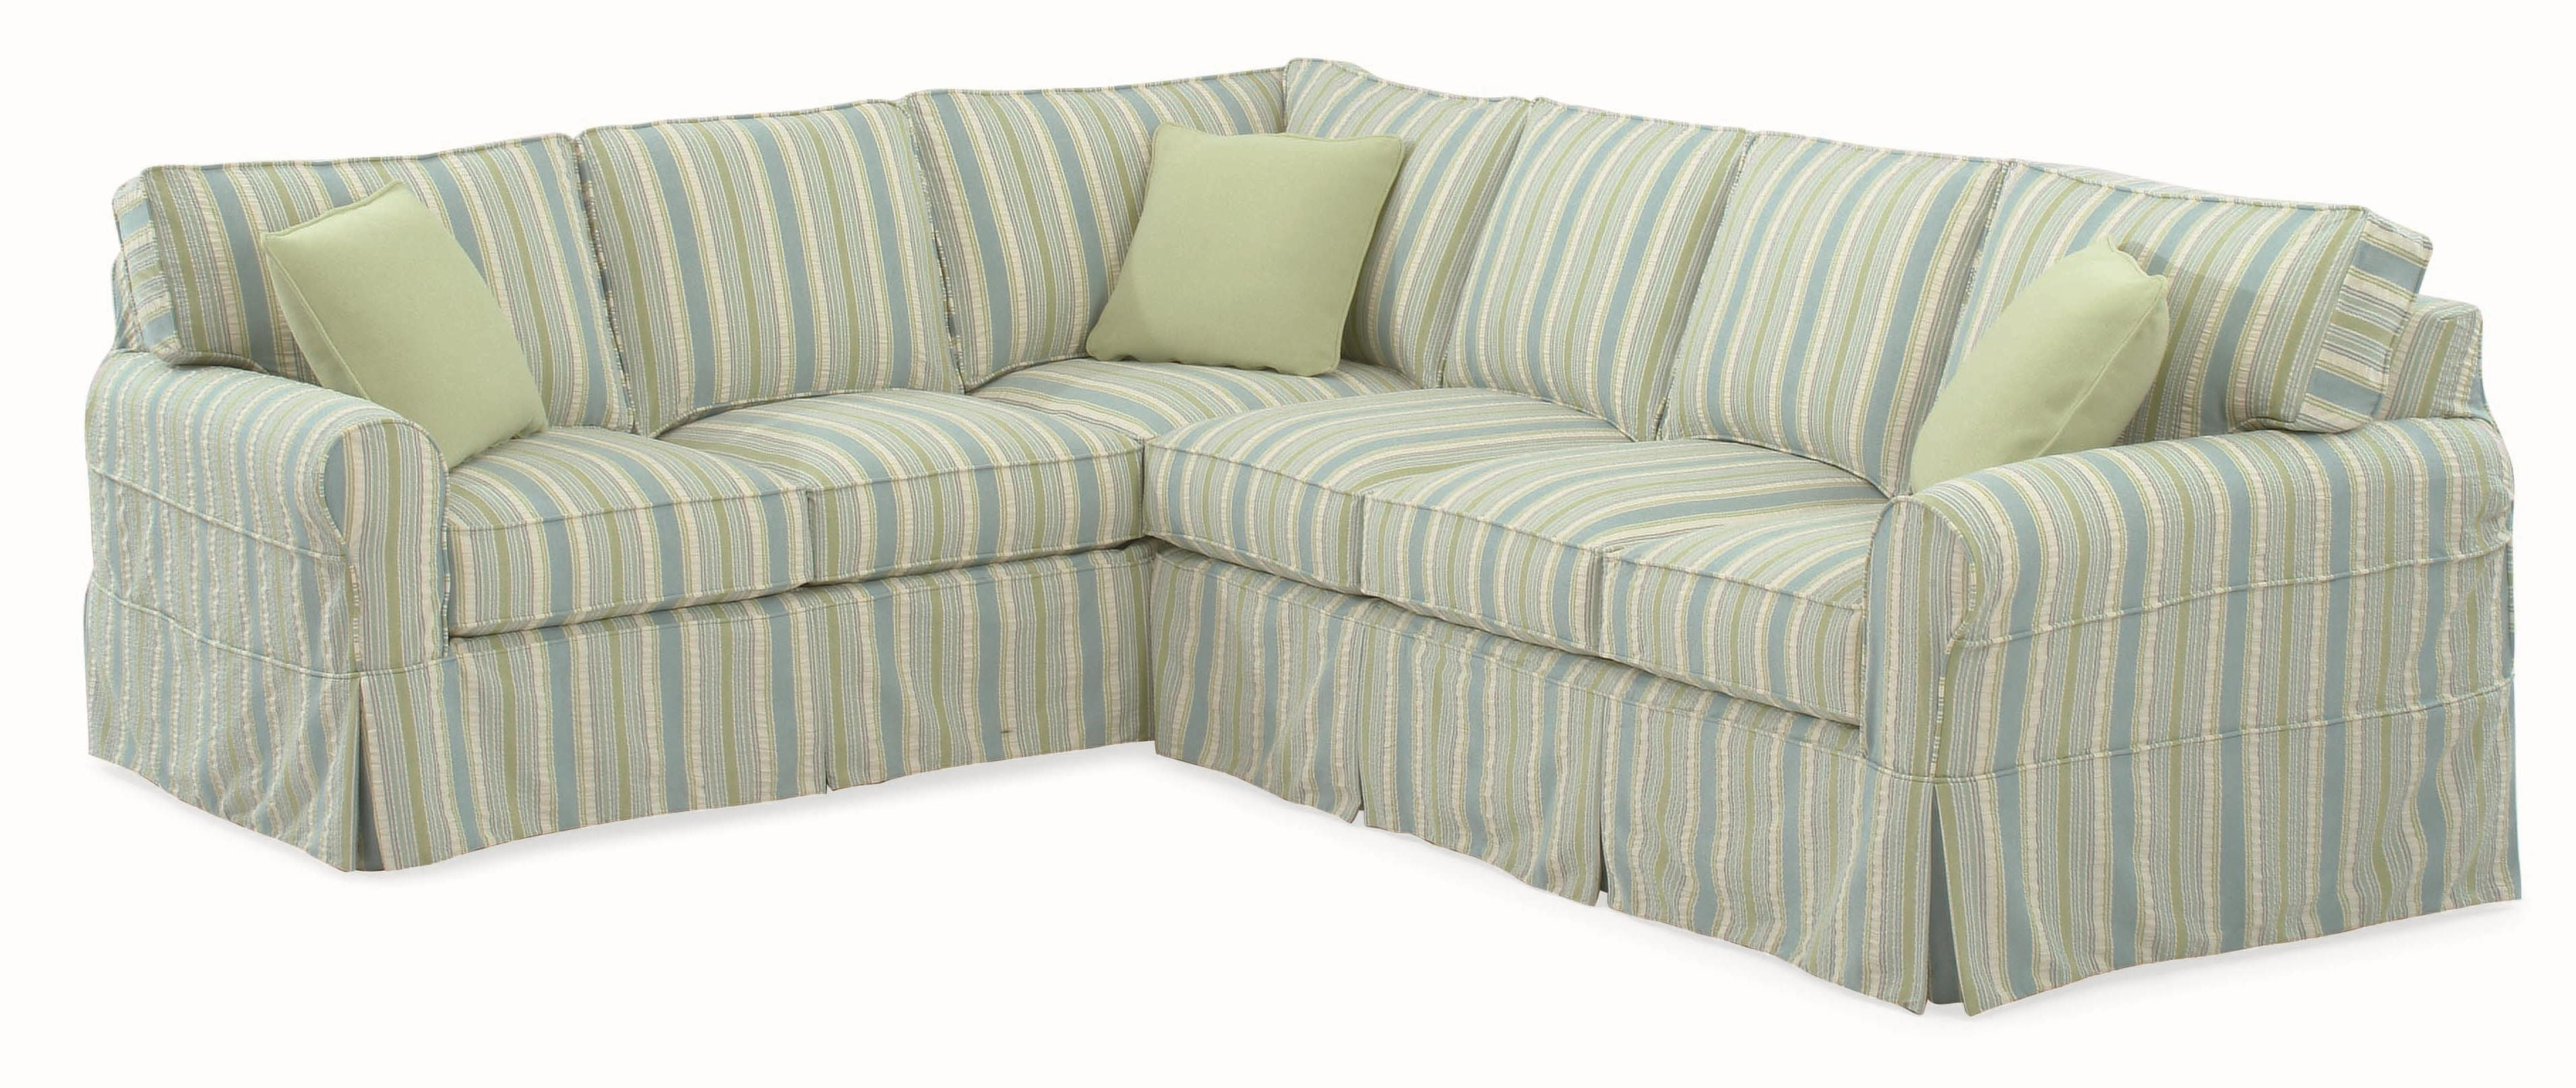 Cheap Living Room Couches